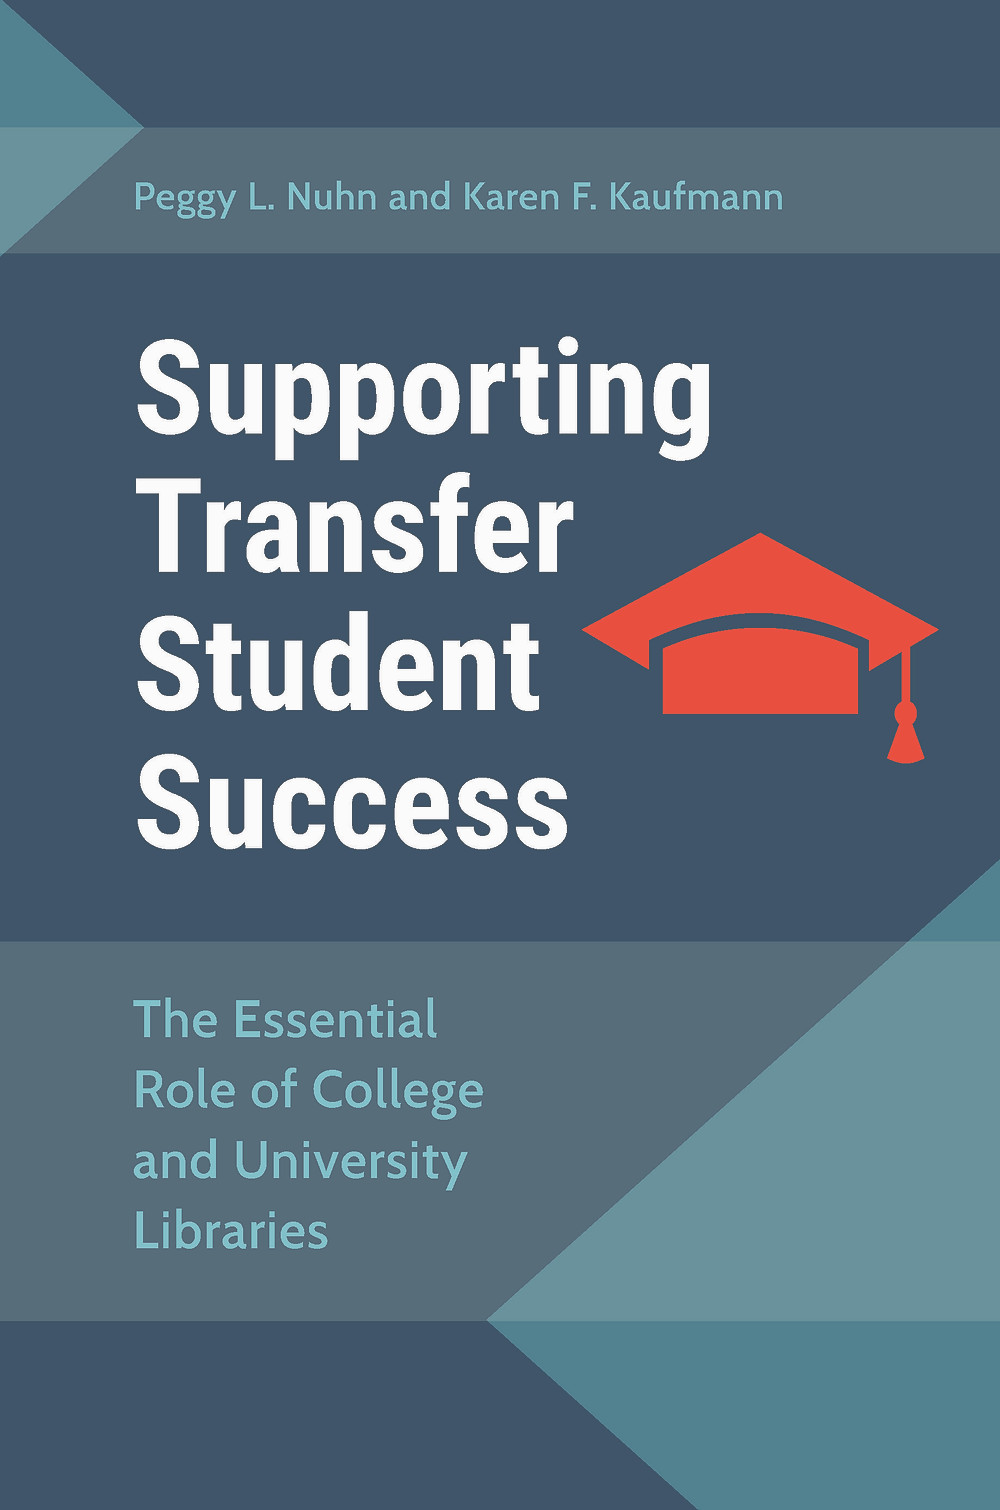 cover of the new book, Supporting Transfer Student Success: The Essential Role of College and University Libraries; the background is a greenish-navy with teal triangle accents and a red graduation cap on the side next to the book's title